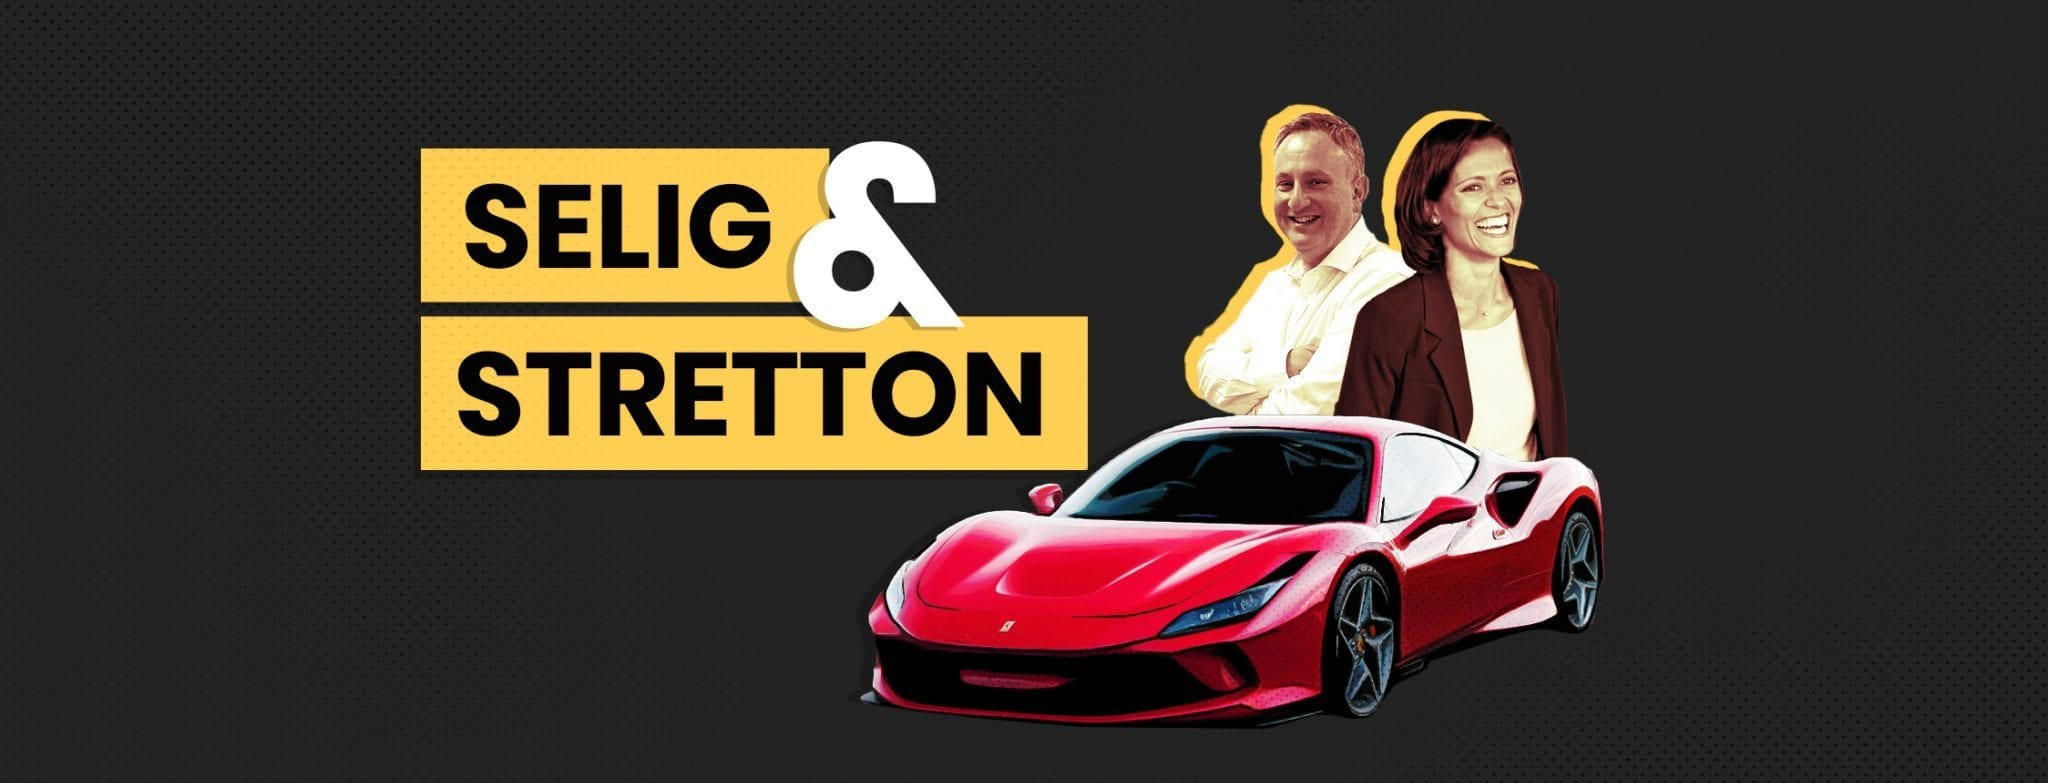 Selig & Stretton: Fund Your Passion Episode 1